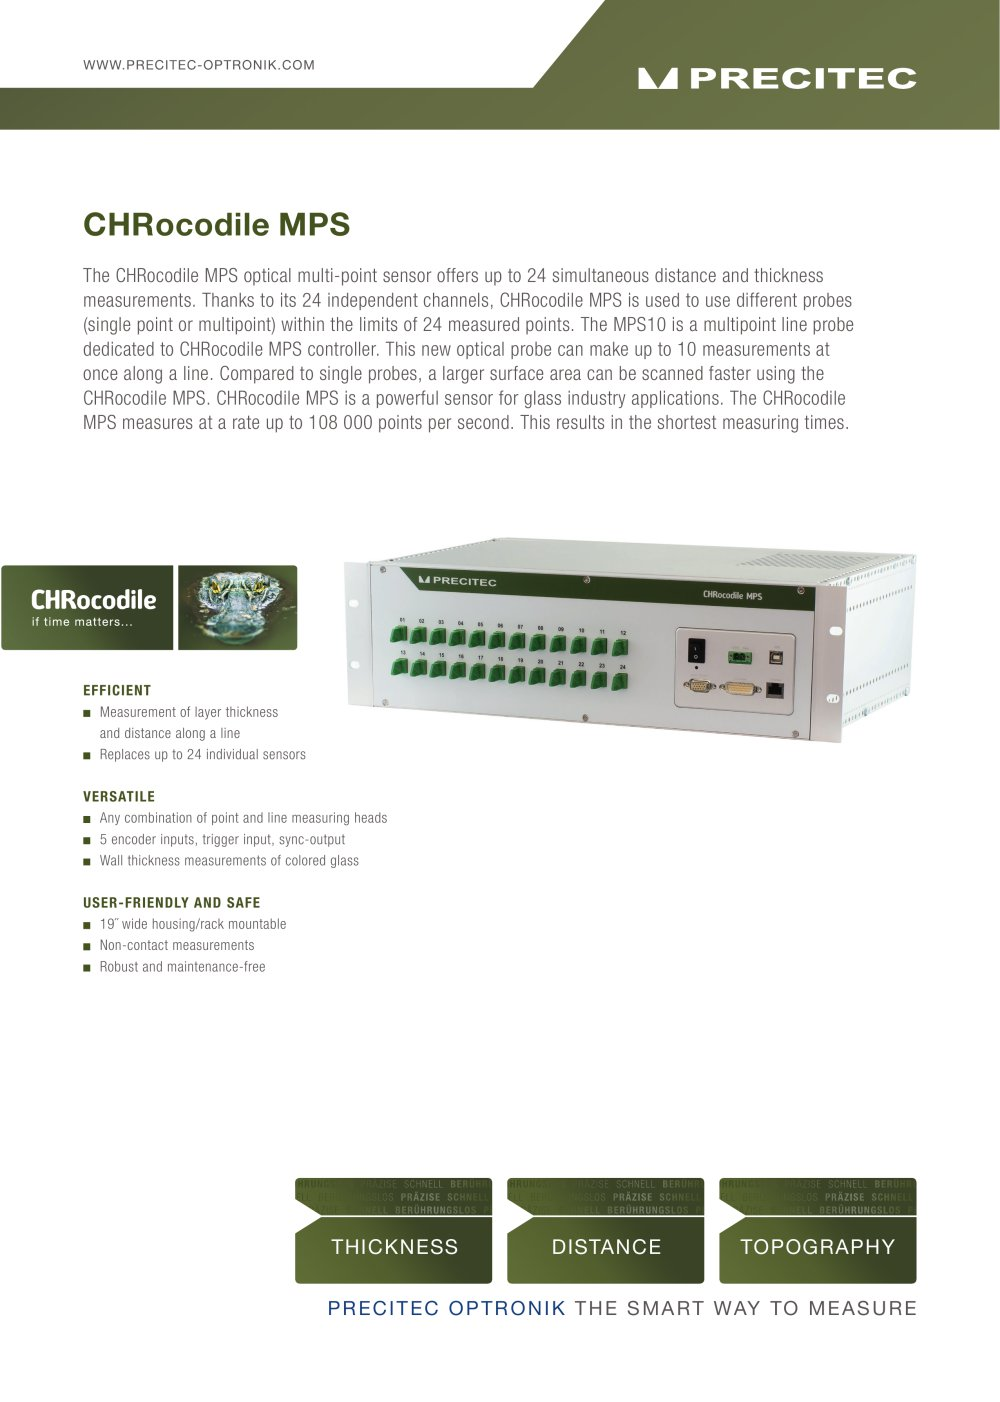 CHRocodile MPS Optical Multi Point Sensor